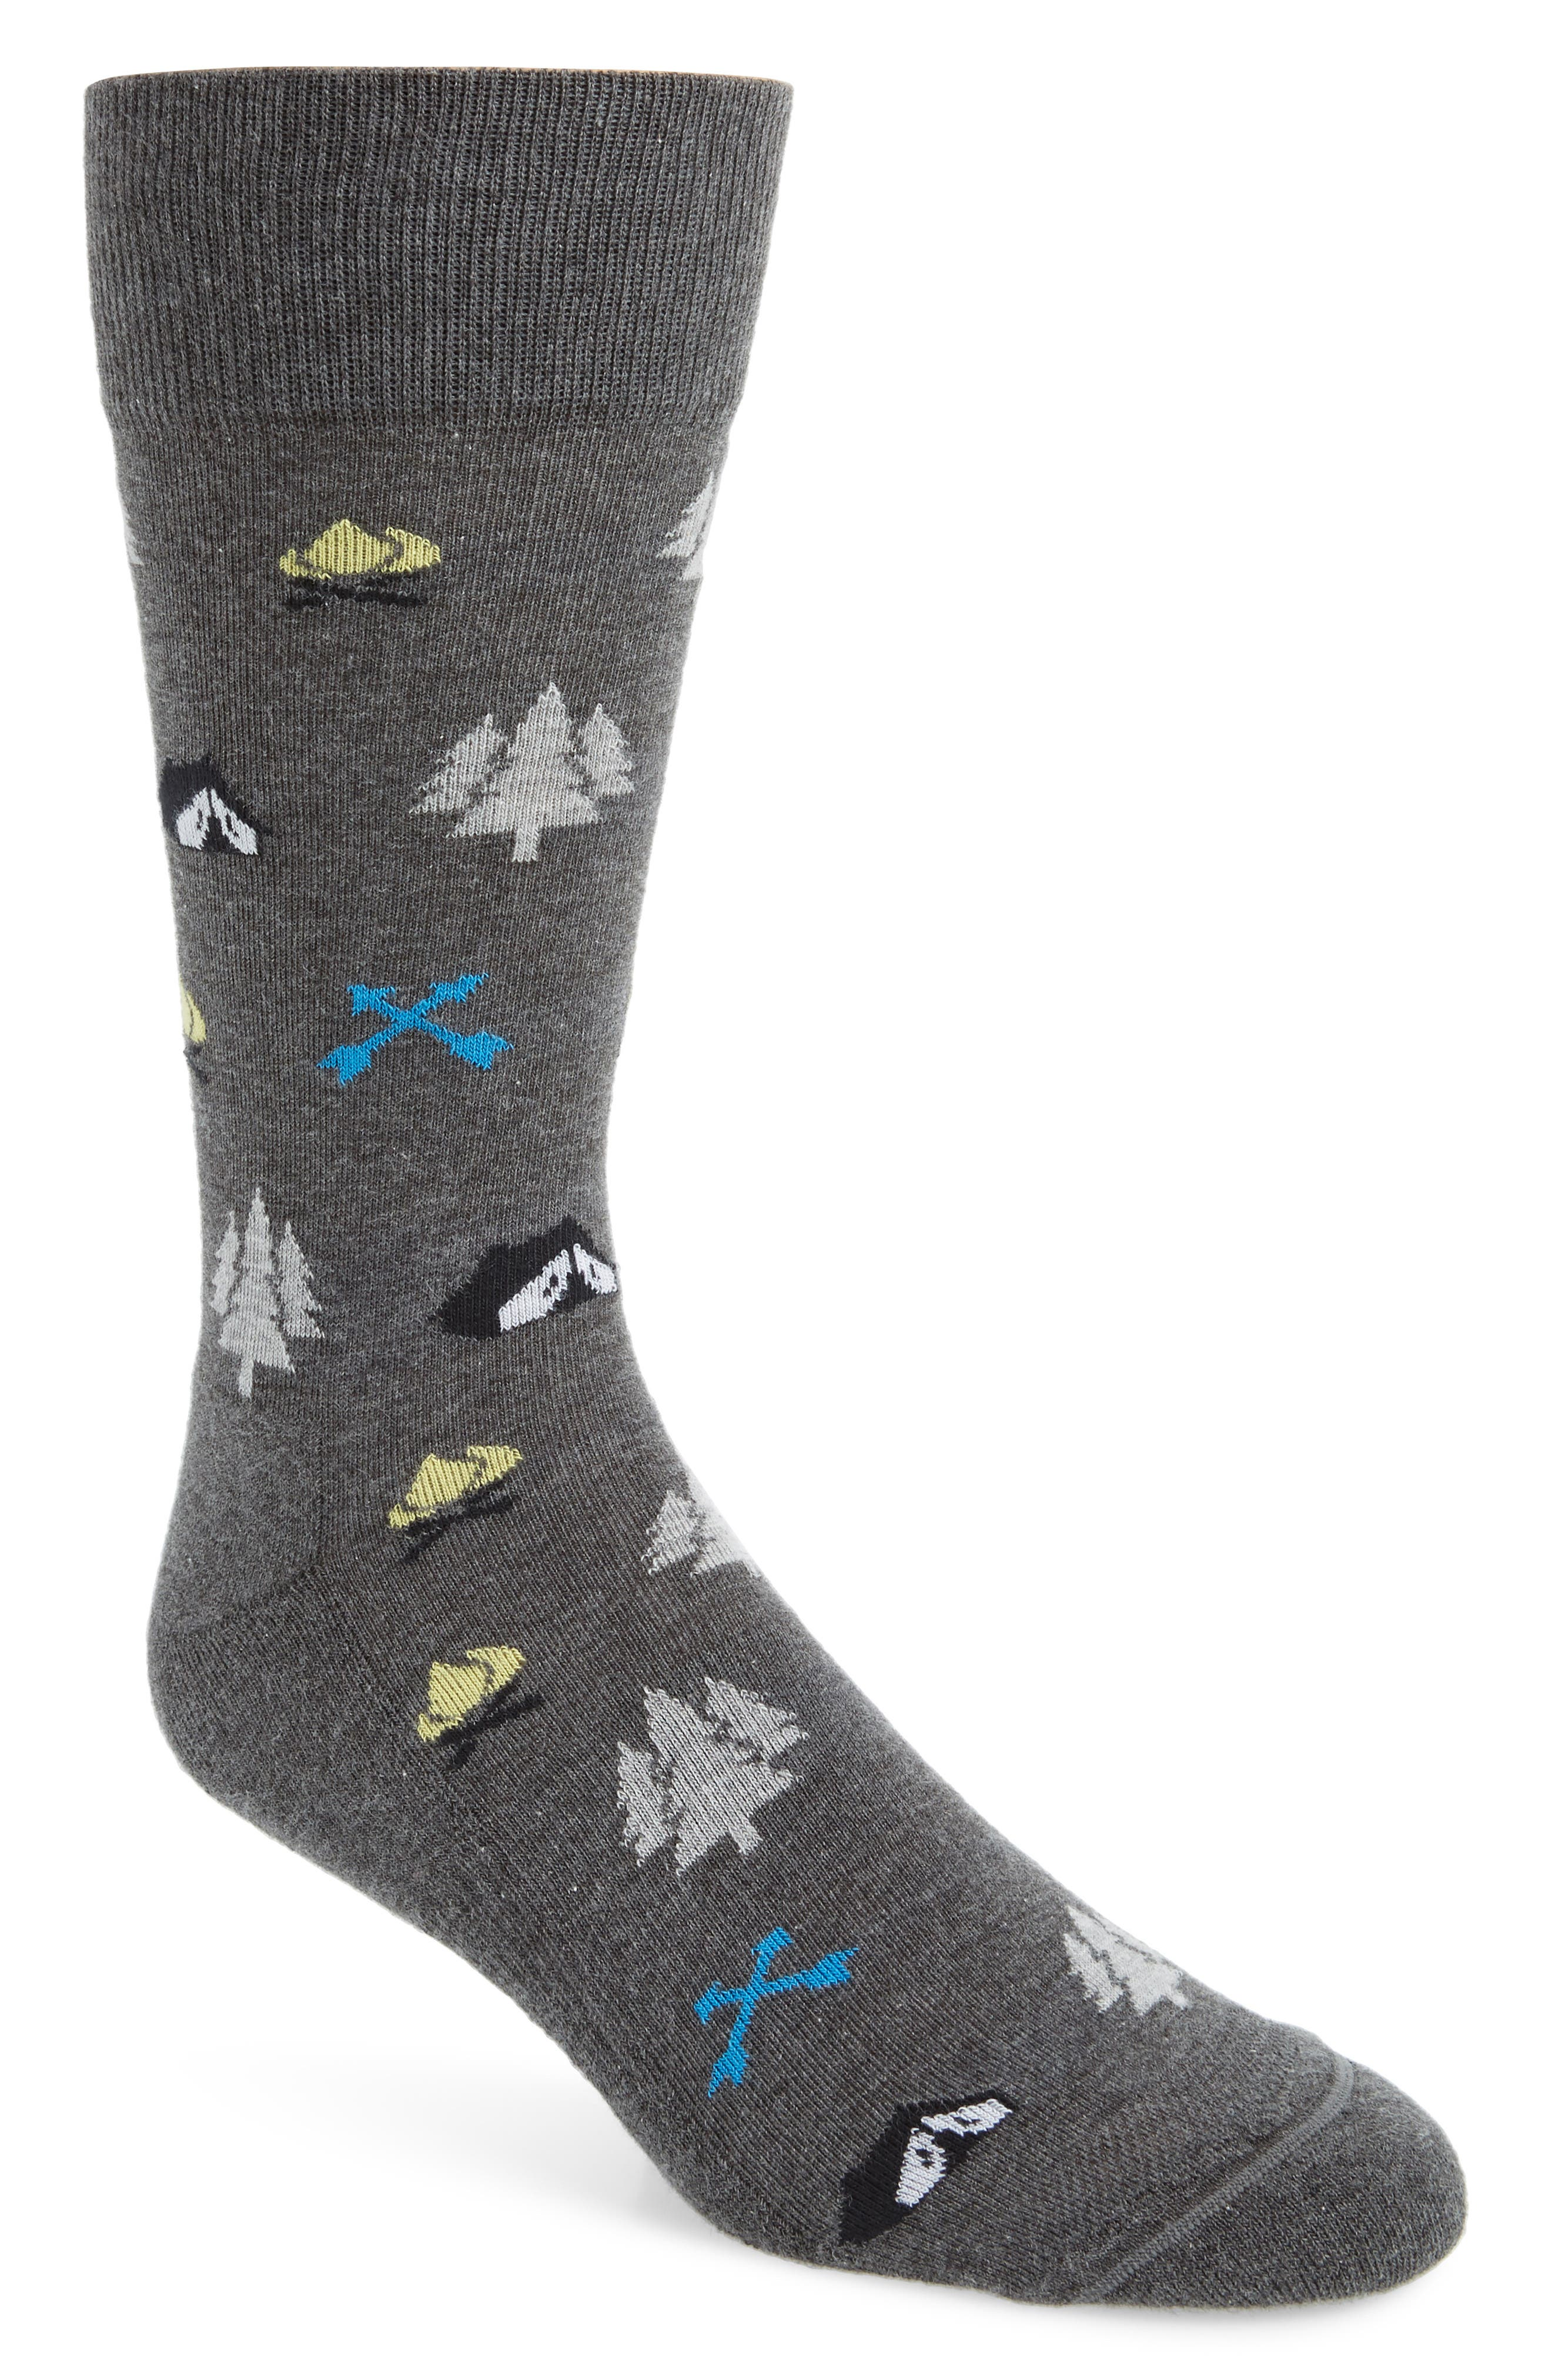 NORDSTROM MEN'S SHOP, Great Outdoors Socks, Main thumbnail 1, color, CHARCOAL HEATHER